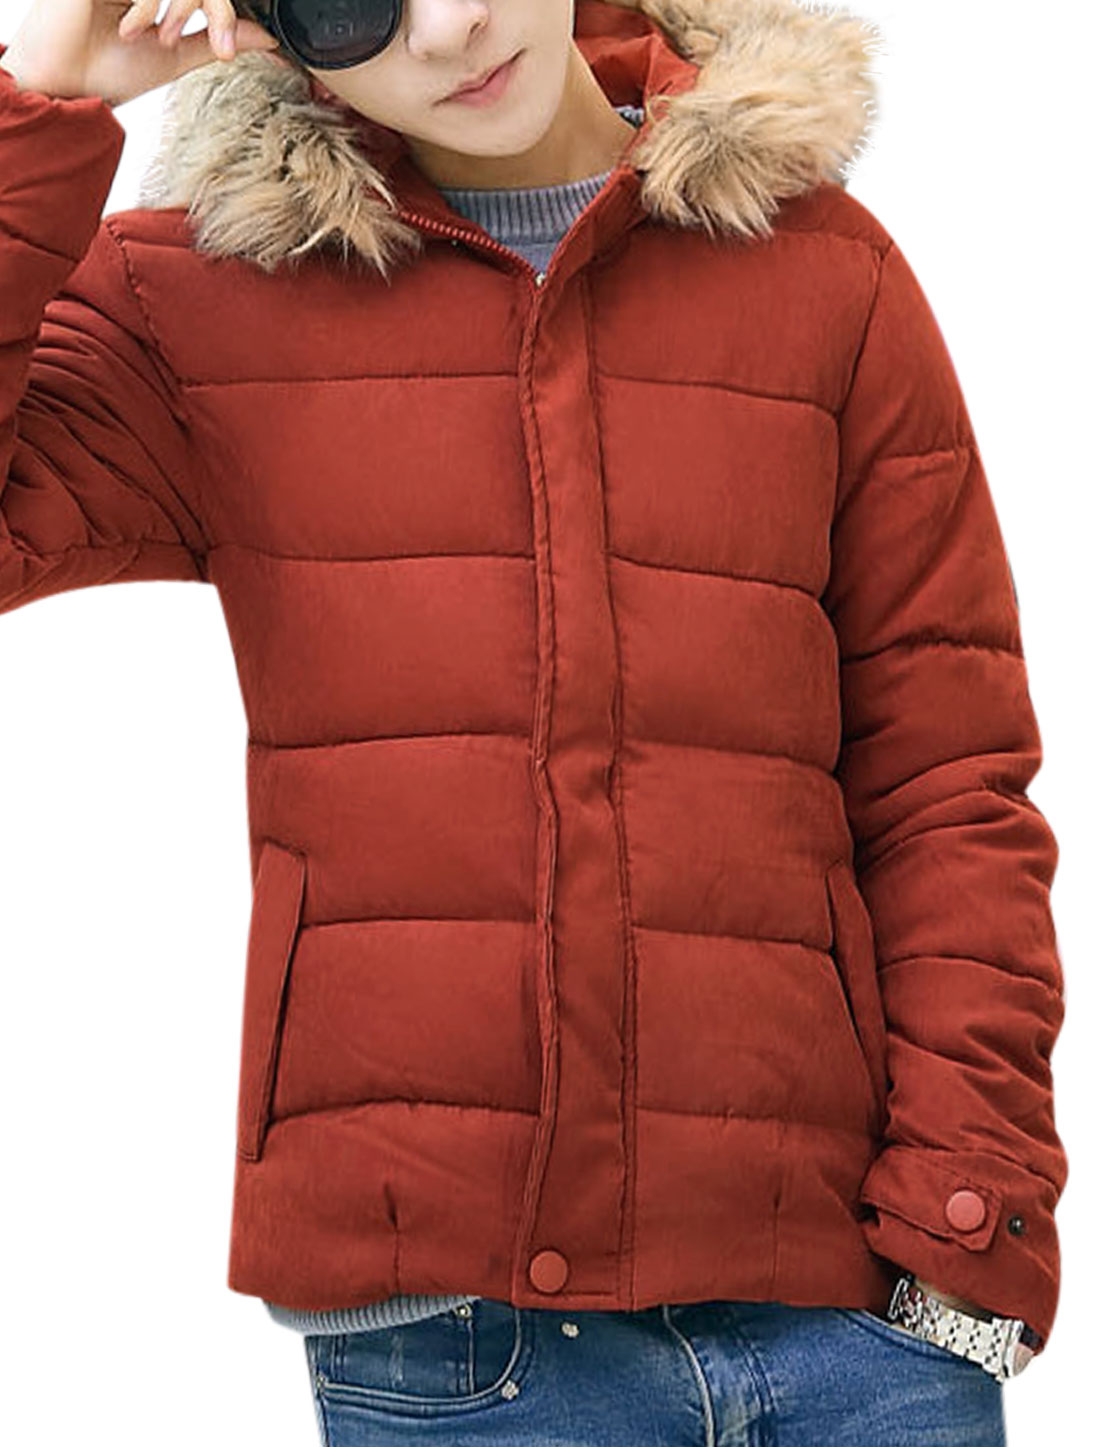 Men Long Sleeves Two Pockets Full Zip Hooded Casual Padded Coat Orange Red M